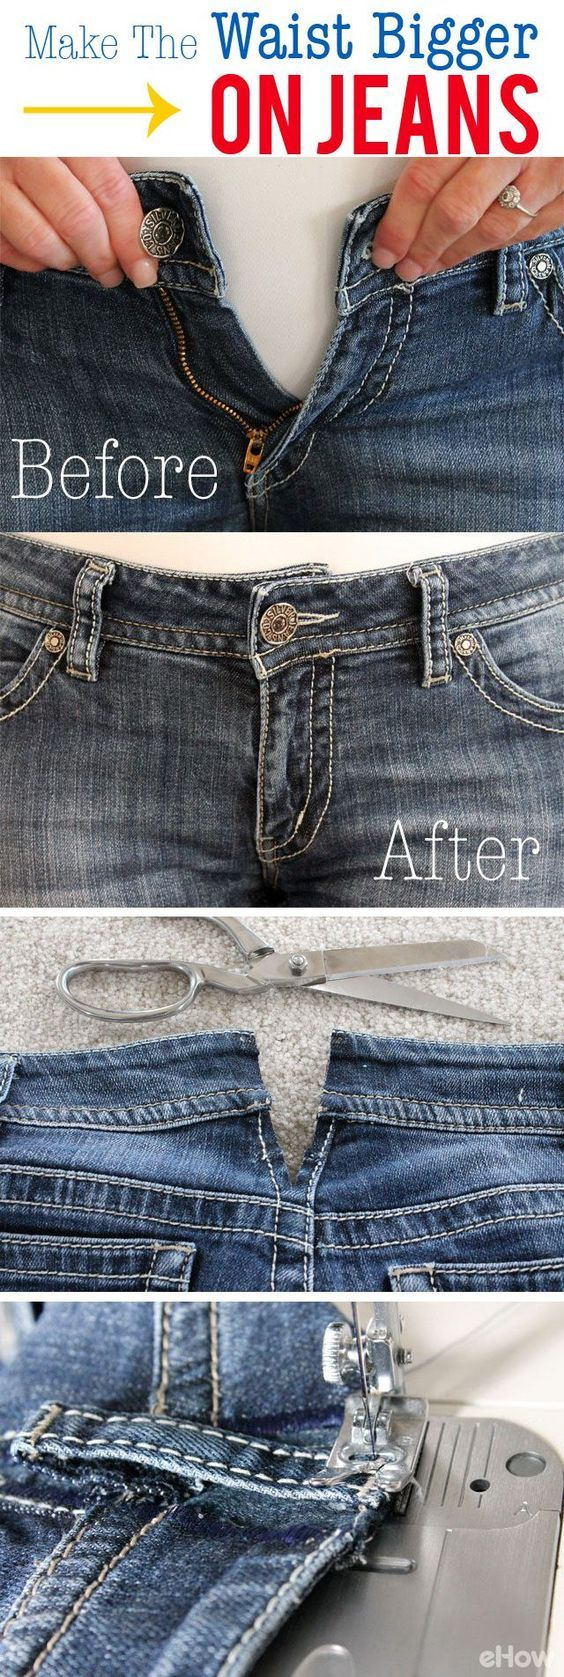 Shhhh! We won't tell anyone and no one will be able to tell! A quick fix to make tighter jeans a little more comfortable in the waist. This quick sewing trick is easy to learn! http://www.ehow.com/how_4924641_make-jeans-waist-bigger.html?utm_source=pinterest.com&utm_medium=referral&utm_content=freestyle&utm_campaign=fanpage: